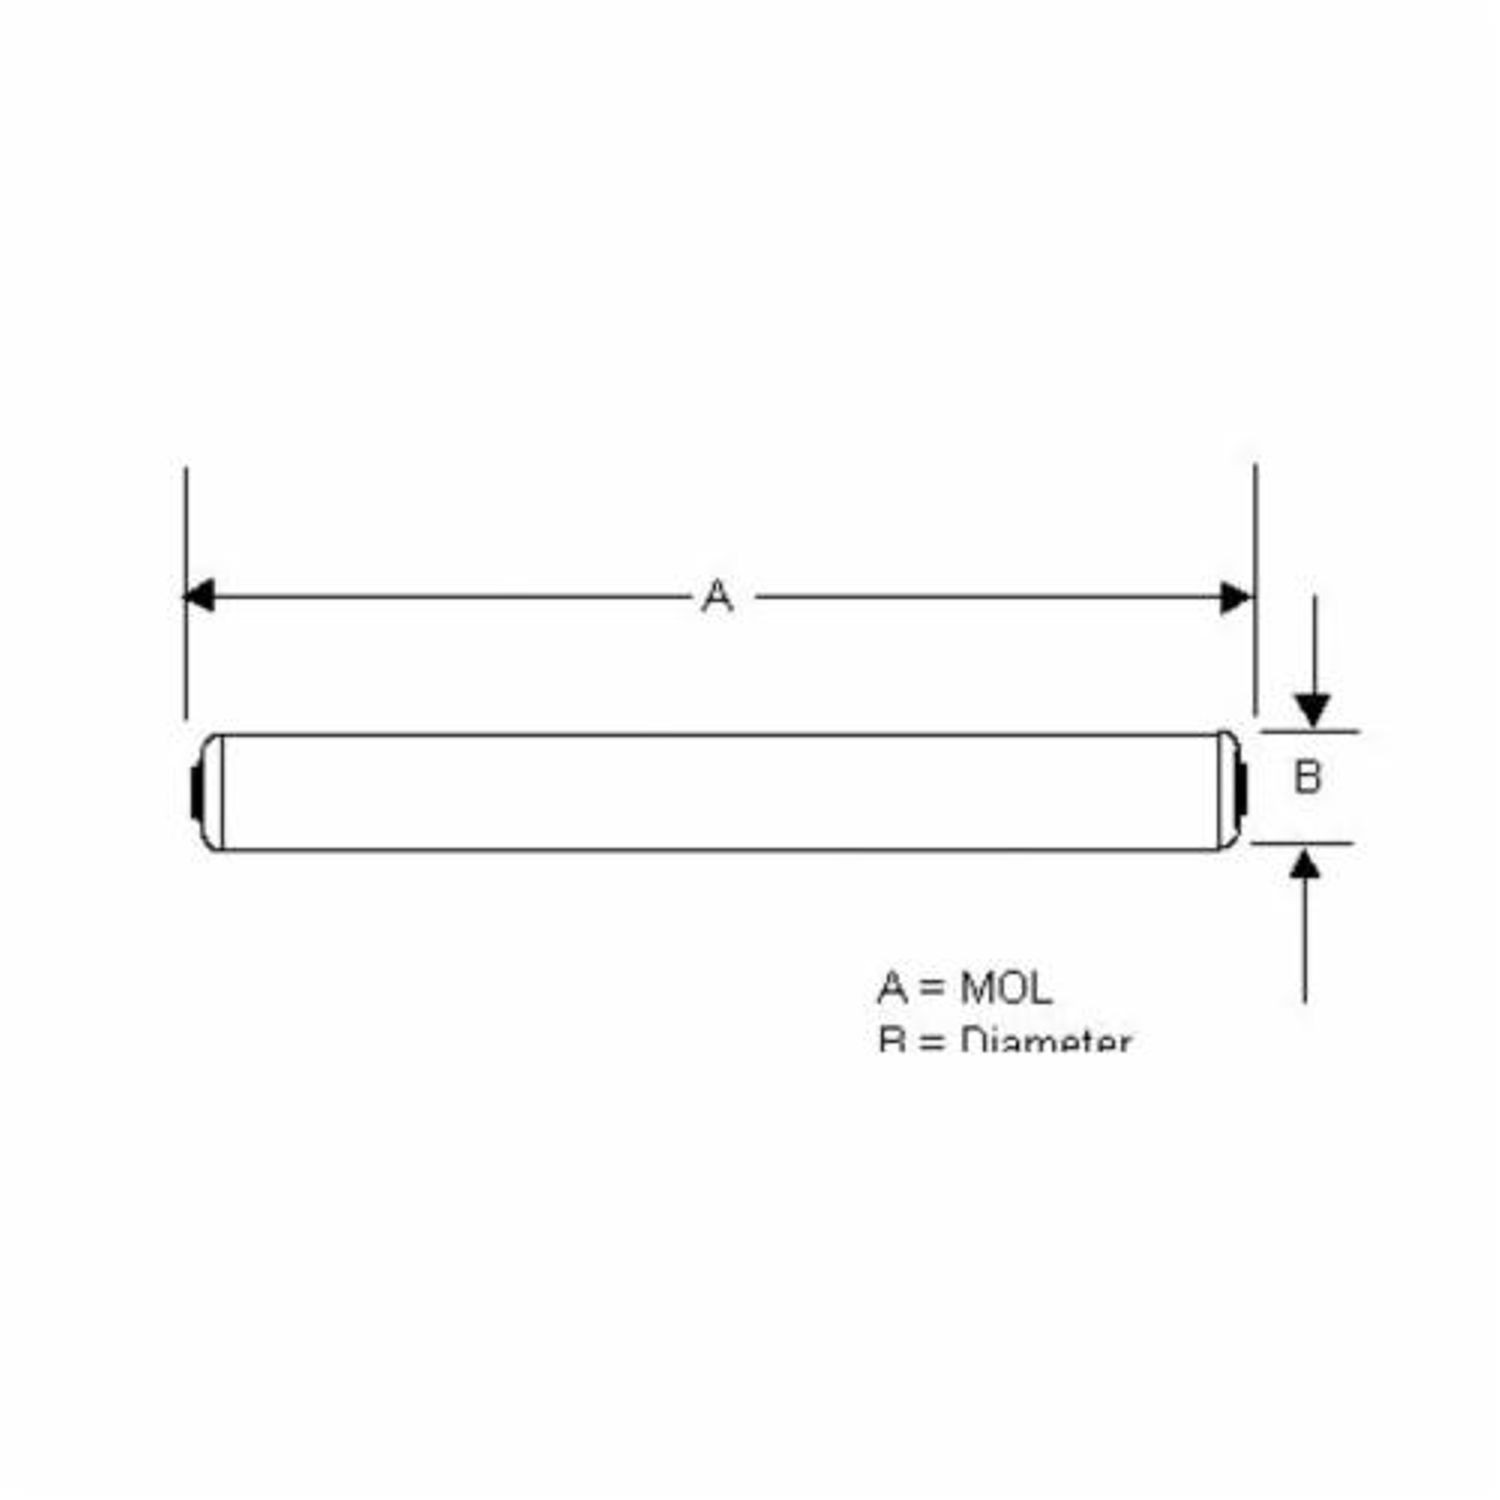 Sylvania F48t12 Cw Ho 25146 High Output Fluorescent Lamp 60 W Circuit Diagram Recessed Double Contact Linear T12 4050 Lumens